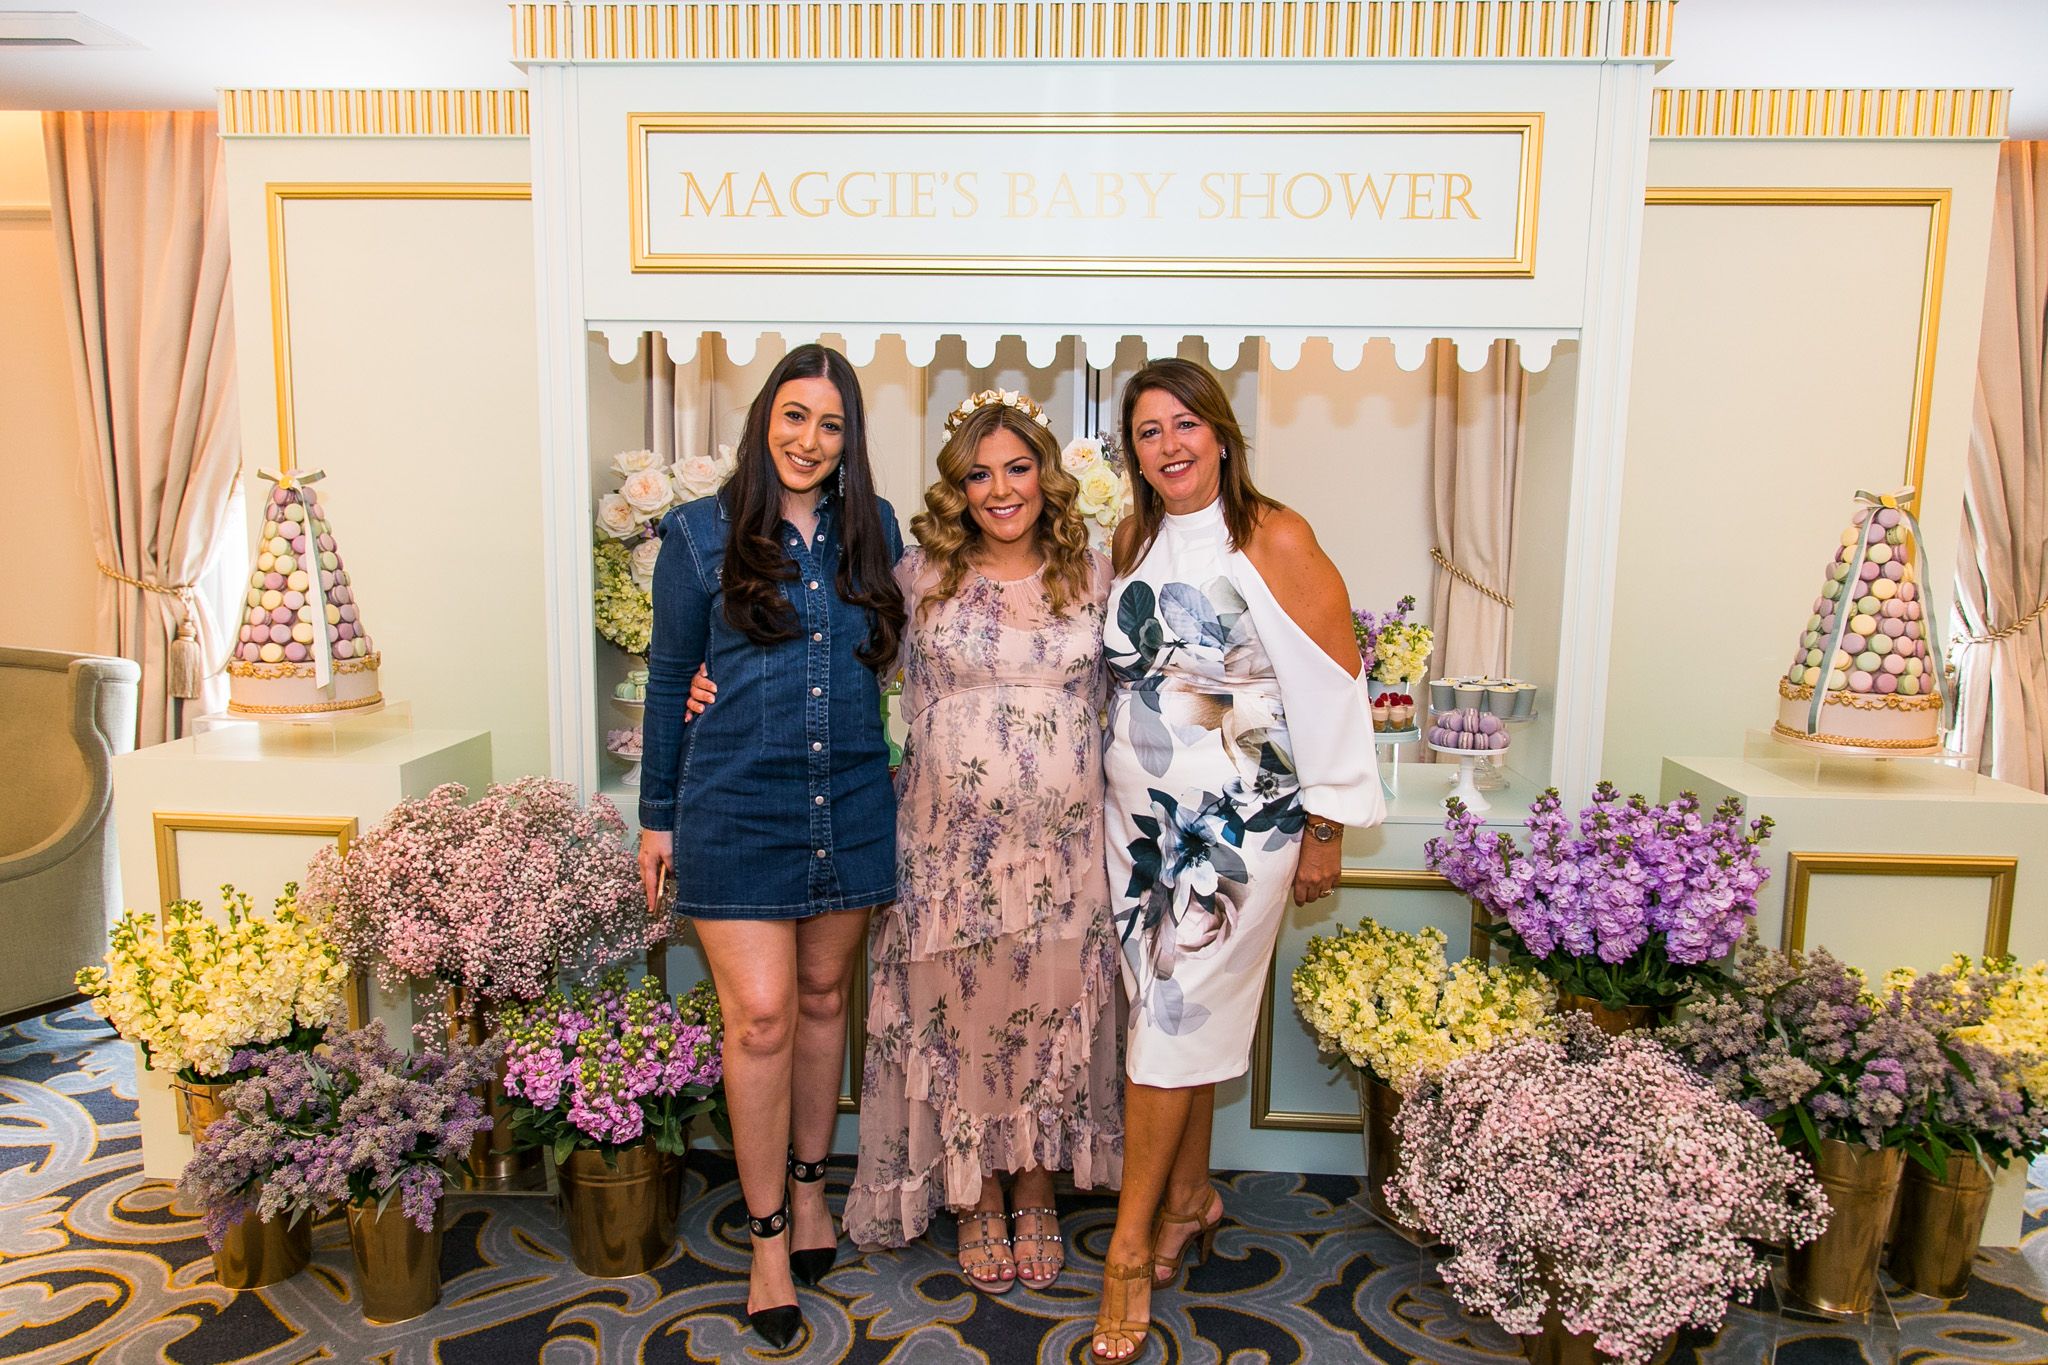 Harrison-Photography-Baby-Shower-Maggie-27